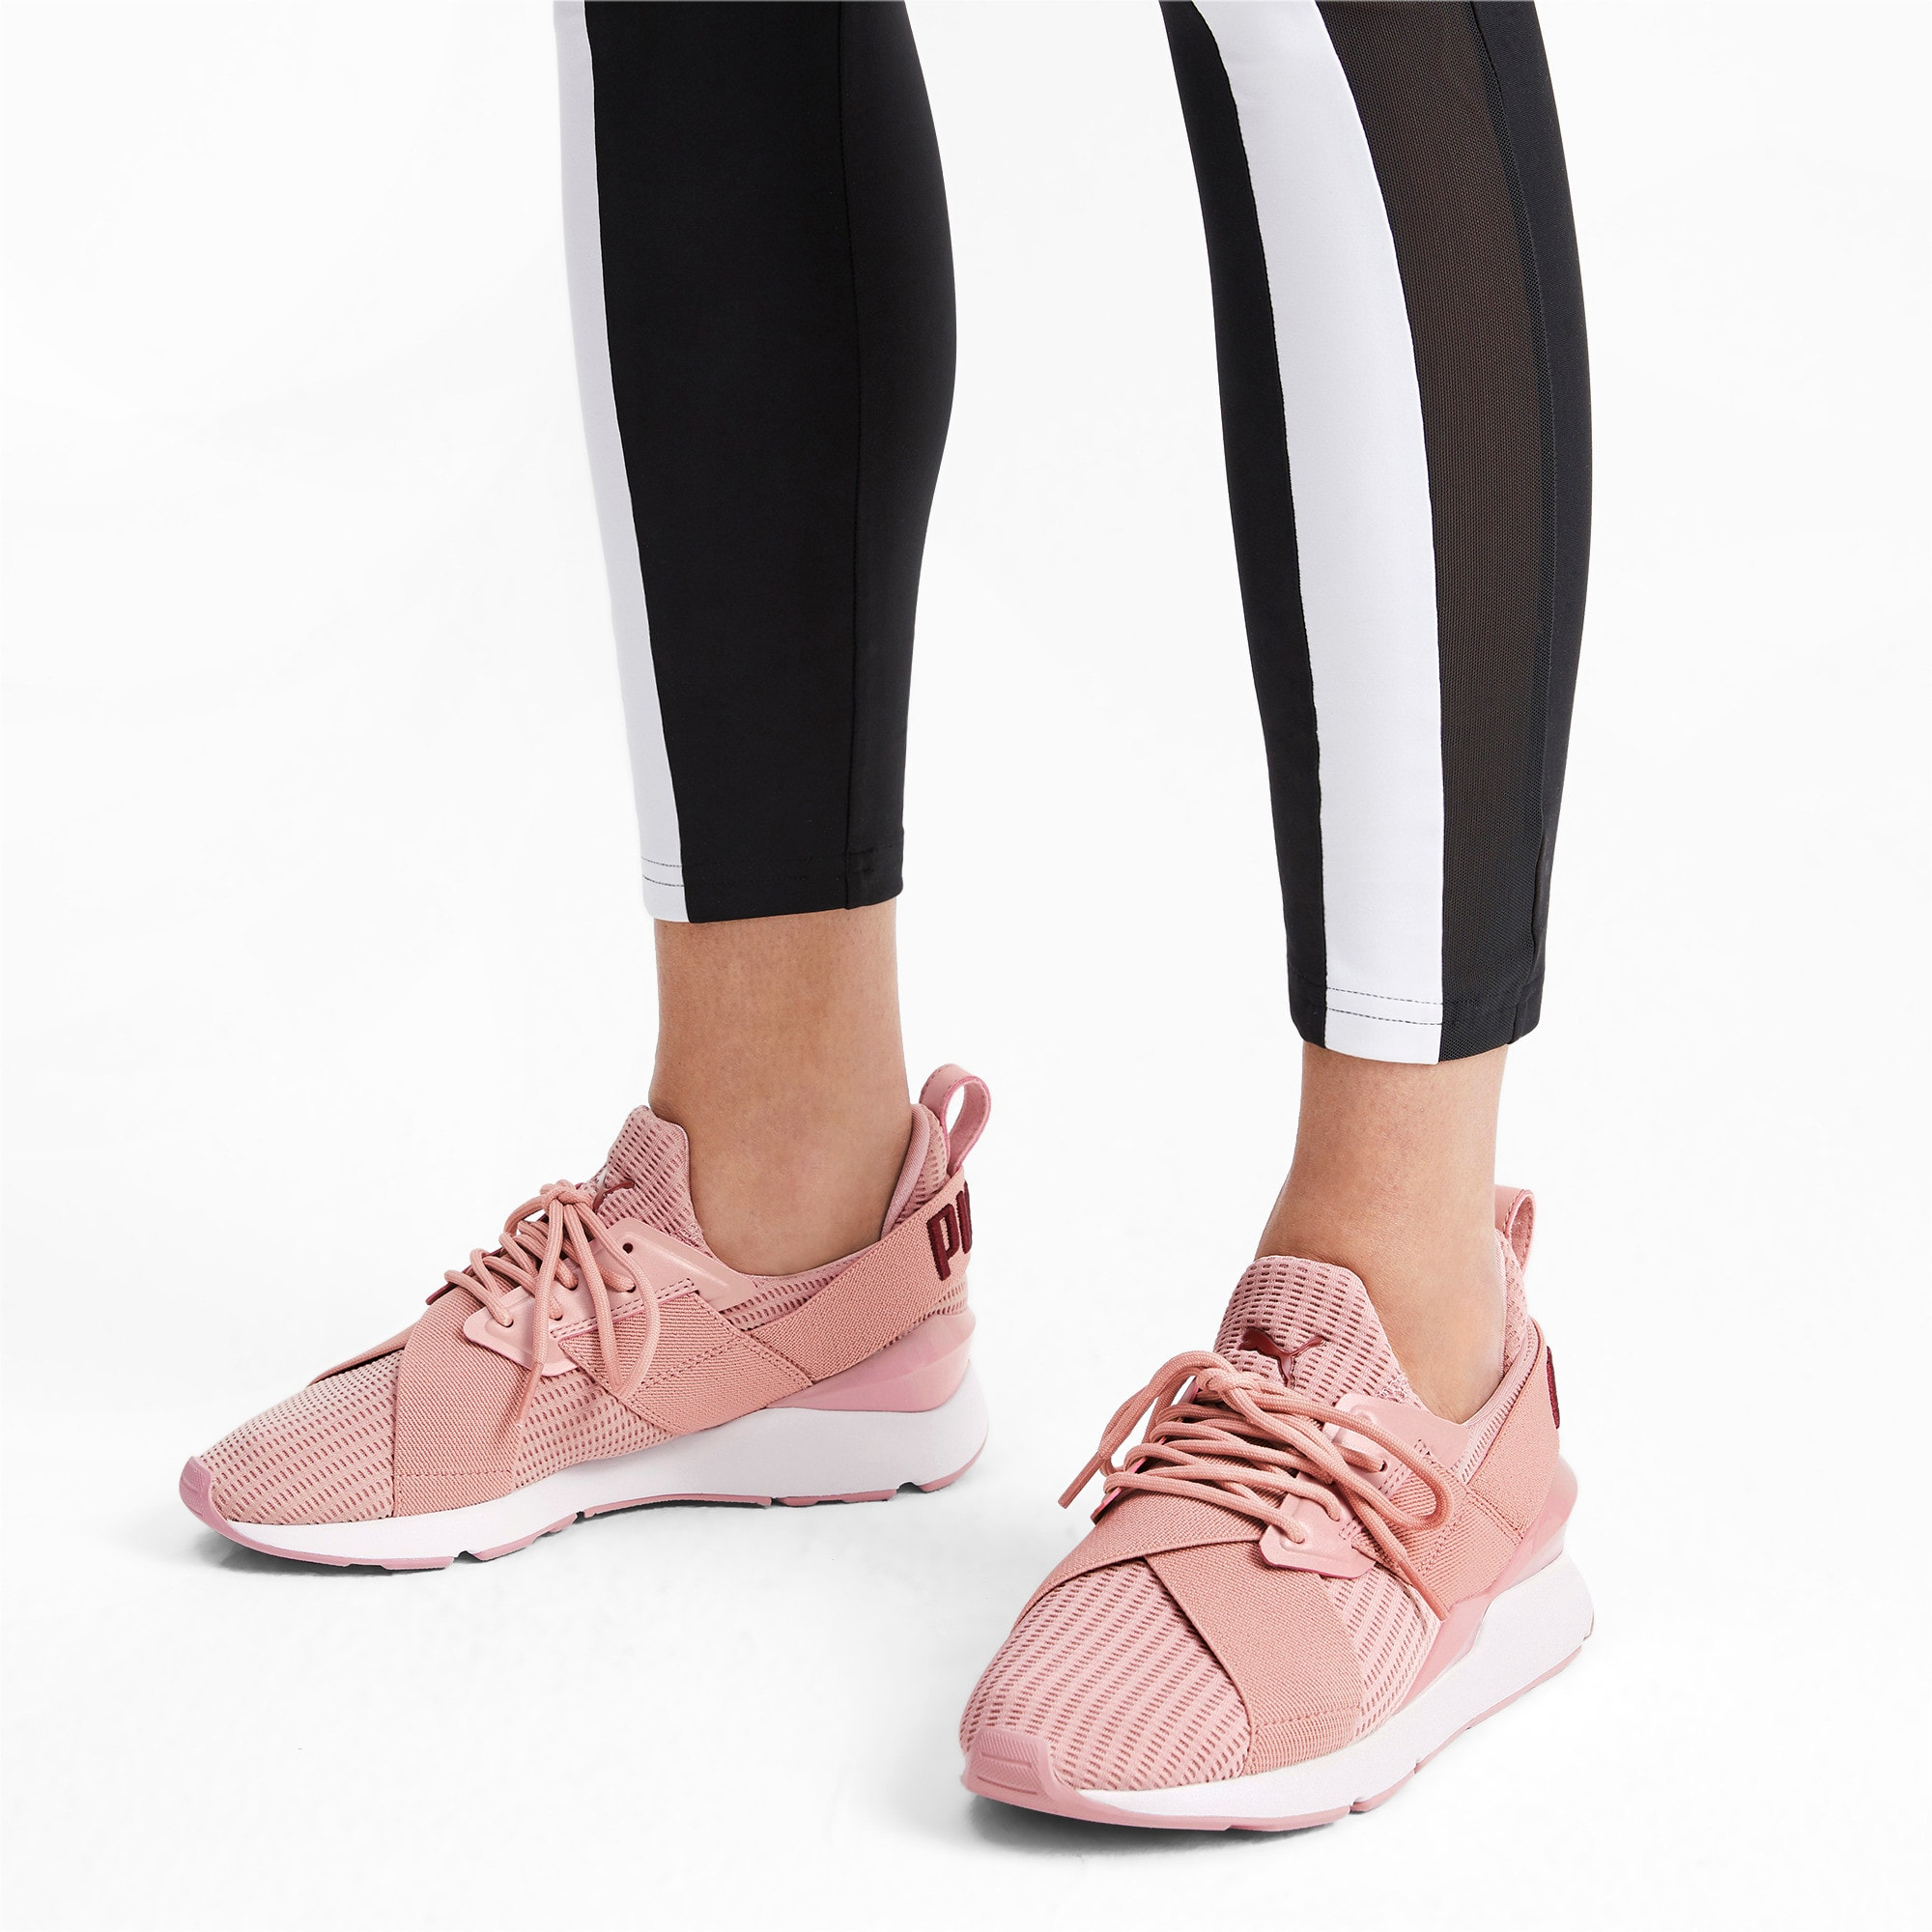 Thumbnail 3 of Muse Core+ Women's Sneakers, Bridal Rose-Fired Brick, medium